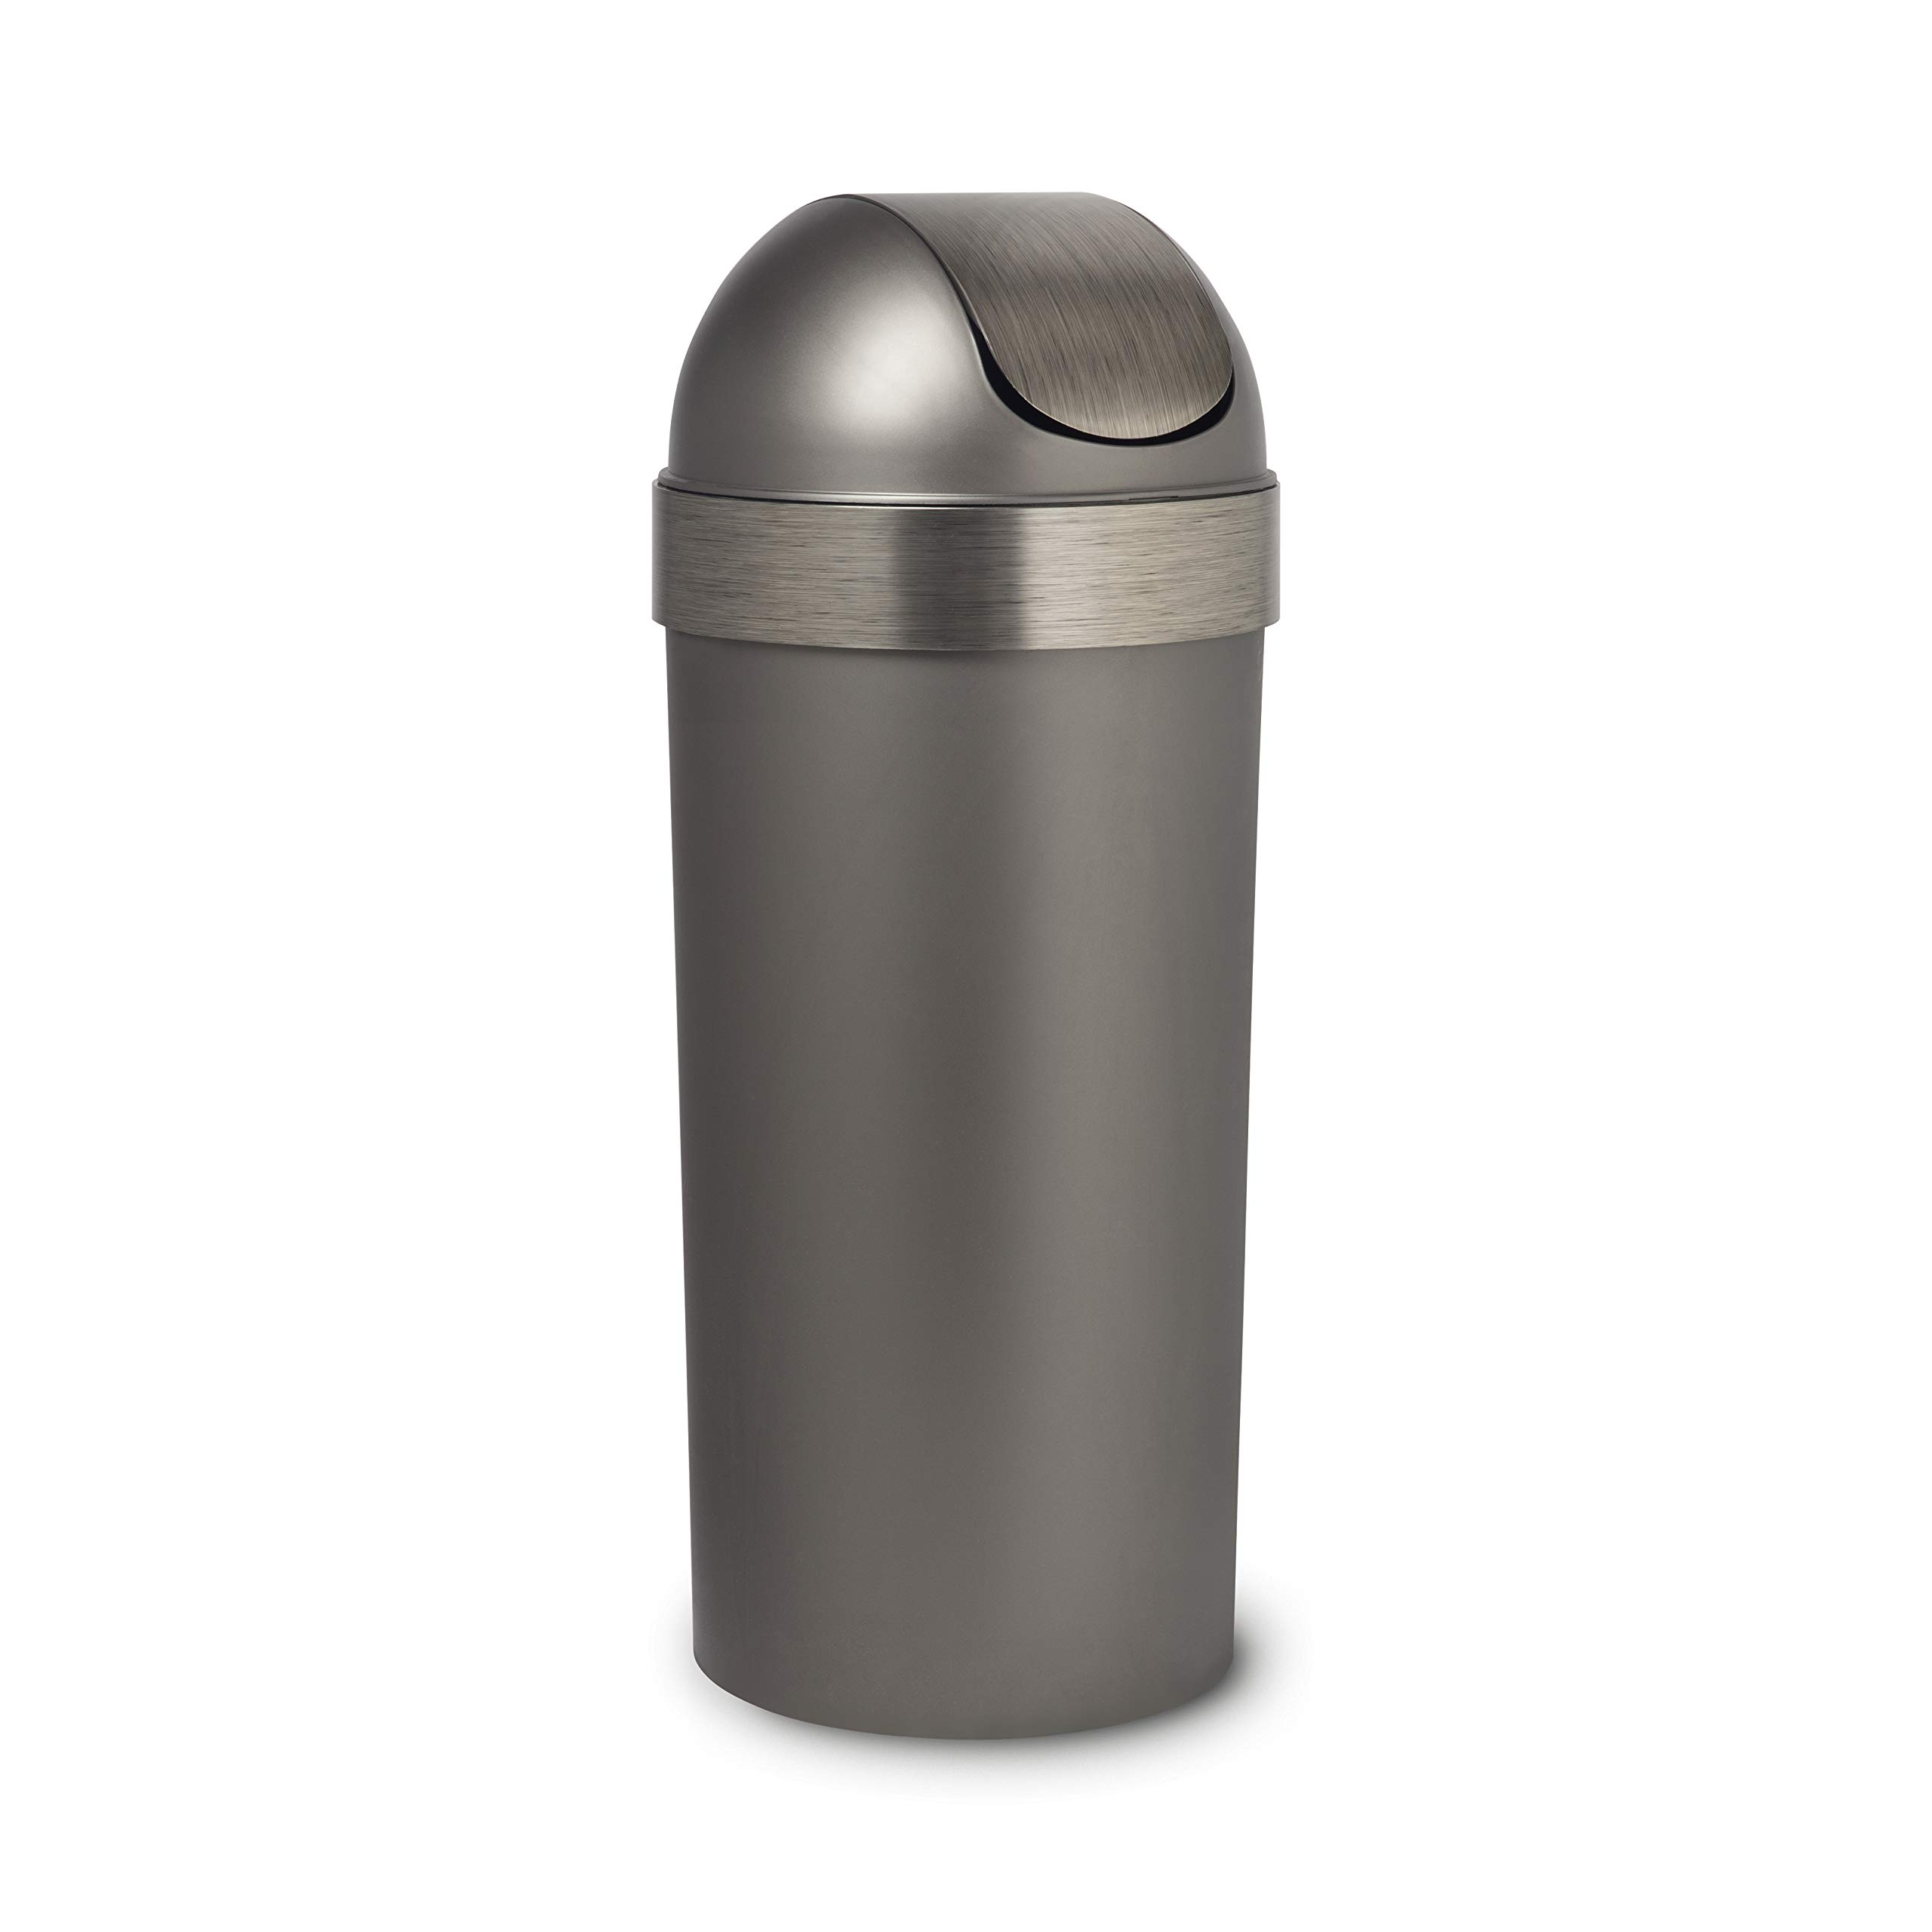 Umbra Venti 16-Gallon Swing Top Kitchen Trash Large, 35-inch Tall Garbage Can for Indoor, Outdoor or Commercial Use, Pewter by Umbra